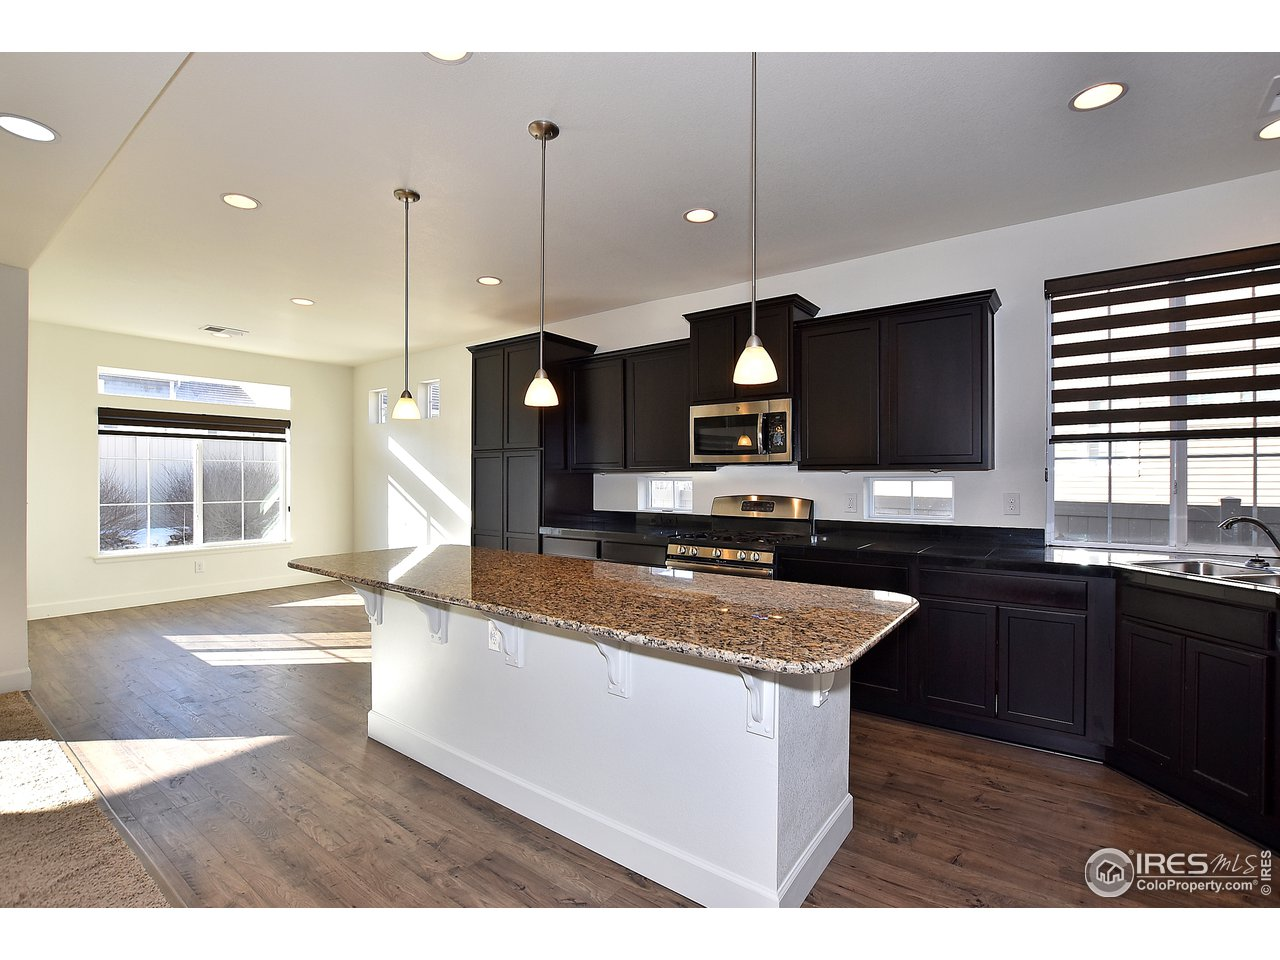 Lovely dining room space off of kitchen